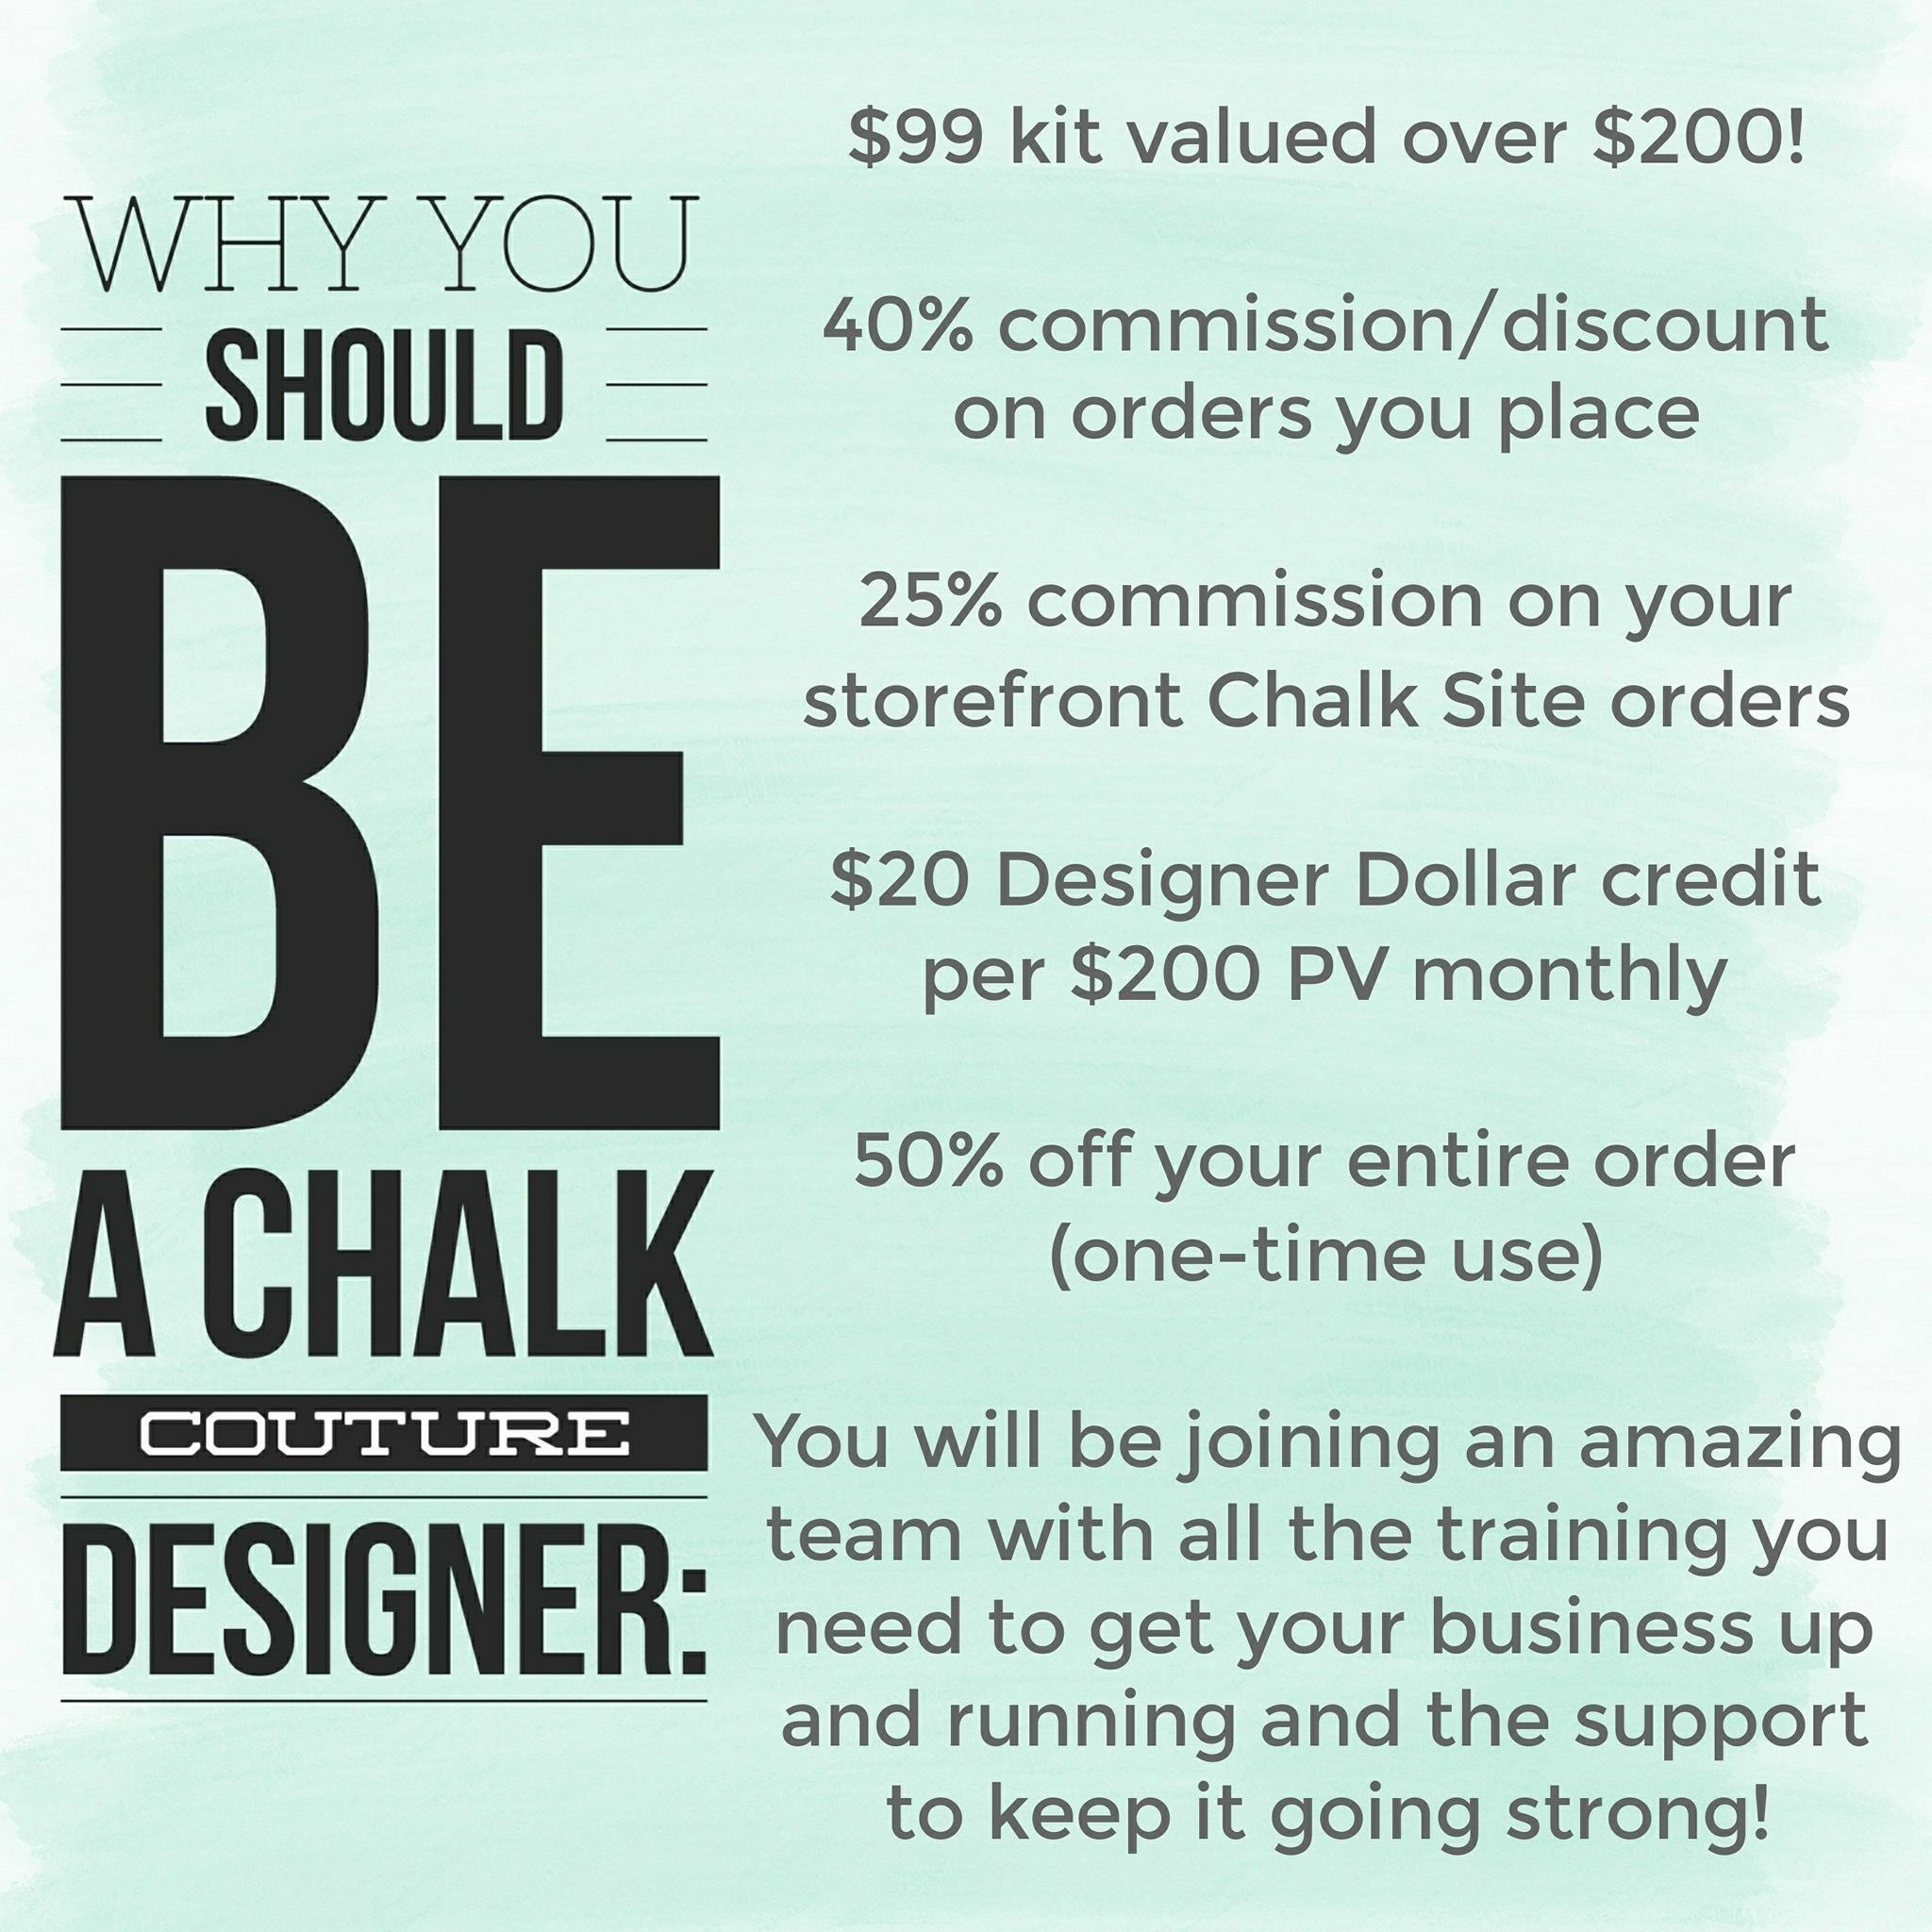 a Chalk Couture Designer and reap the rewards